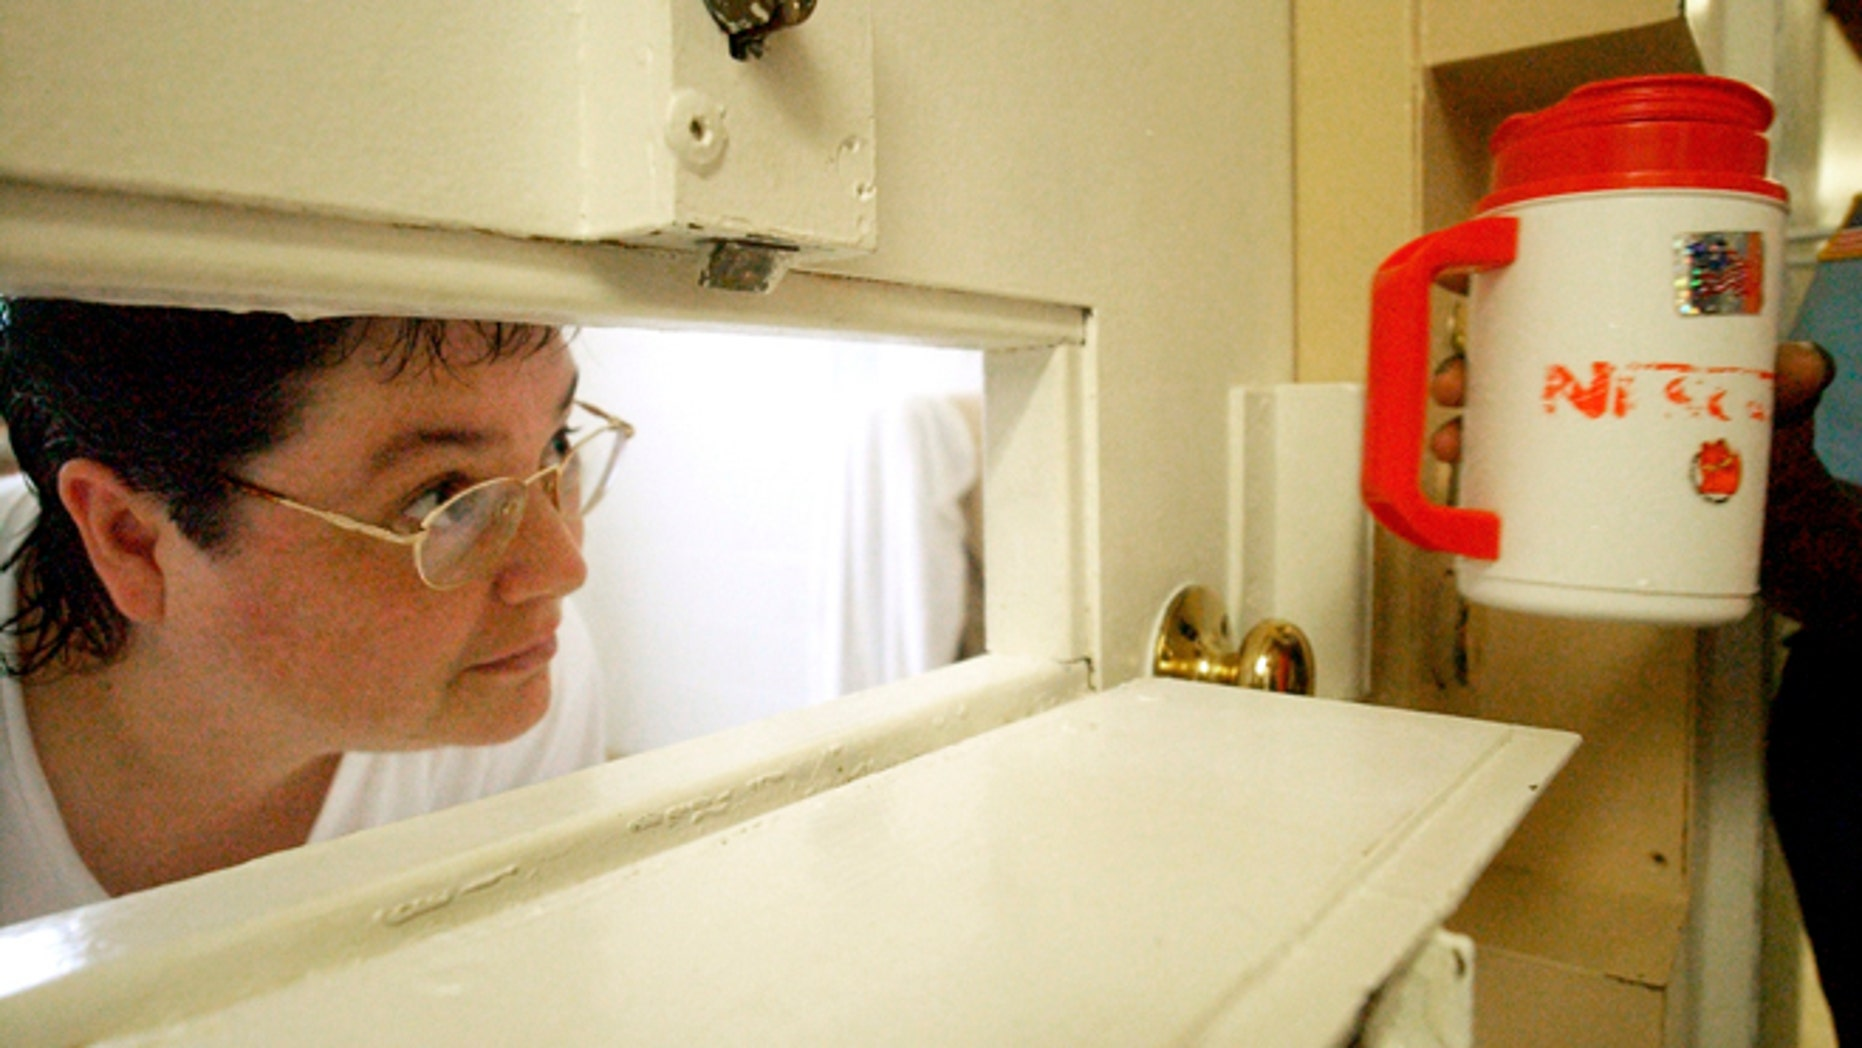 July 6, 2004: In this file photo, Kelly Gissendaner, the only woman on Georgia's death row, peers through the slot in her cell door as a guard brings her a cup of ice at Metro State Prison in Atlanta. (AP/Atlanta Journal-Constitution, Bita Honarvar, File)